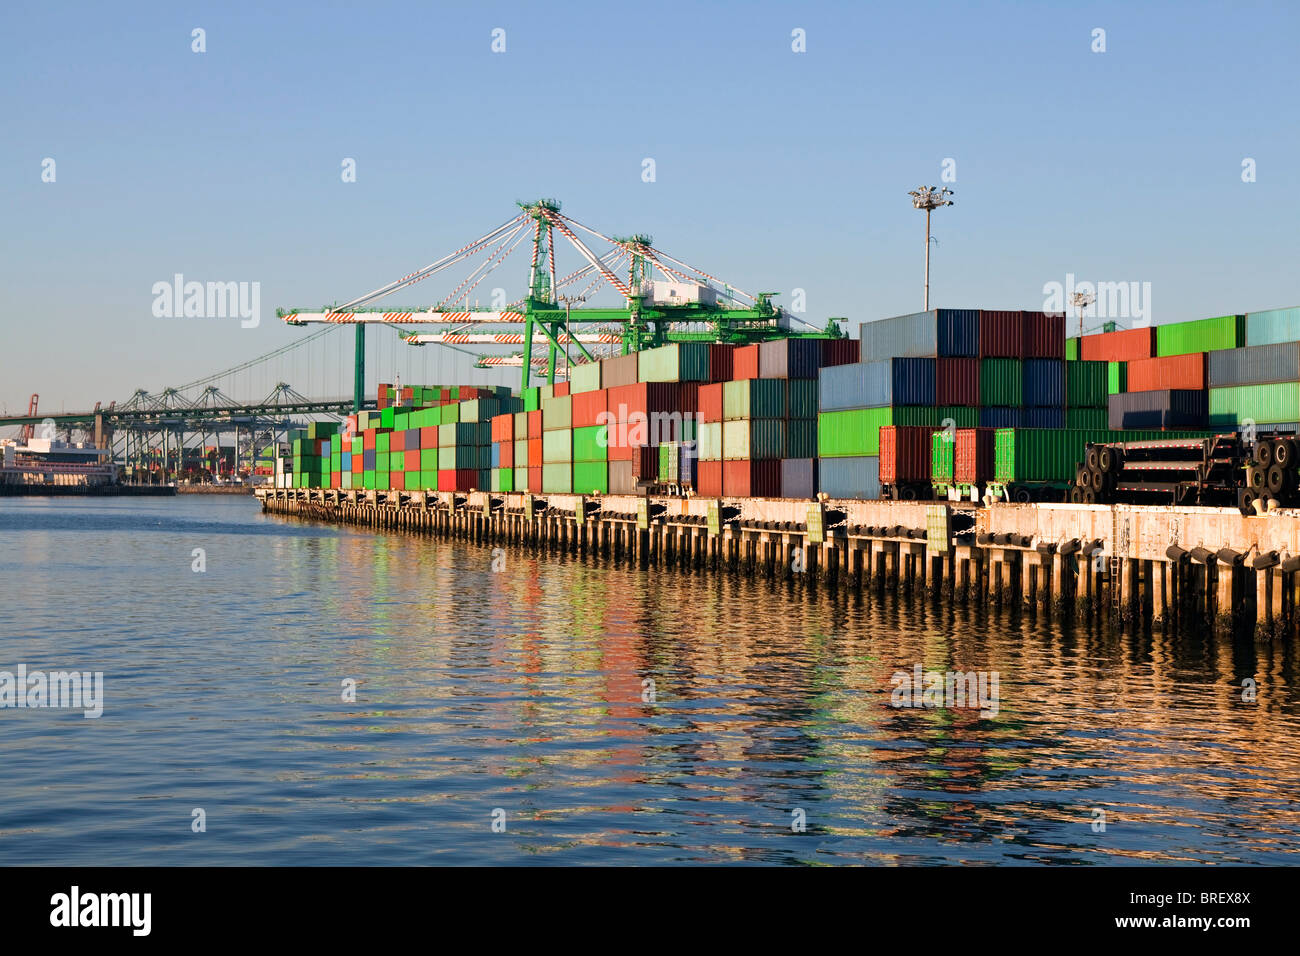 Shipping containers and harbor cranes in warm late afternoon light. - Stock Image